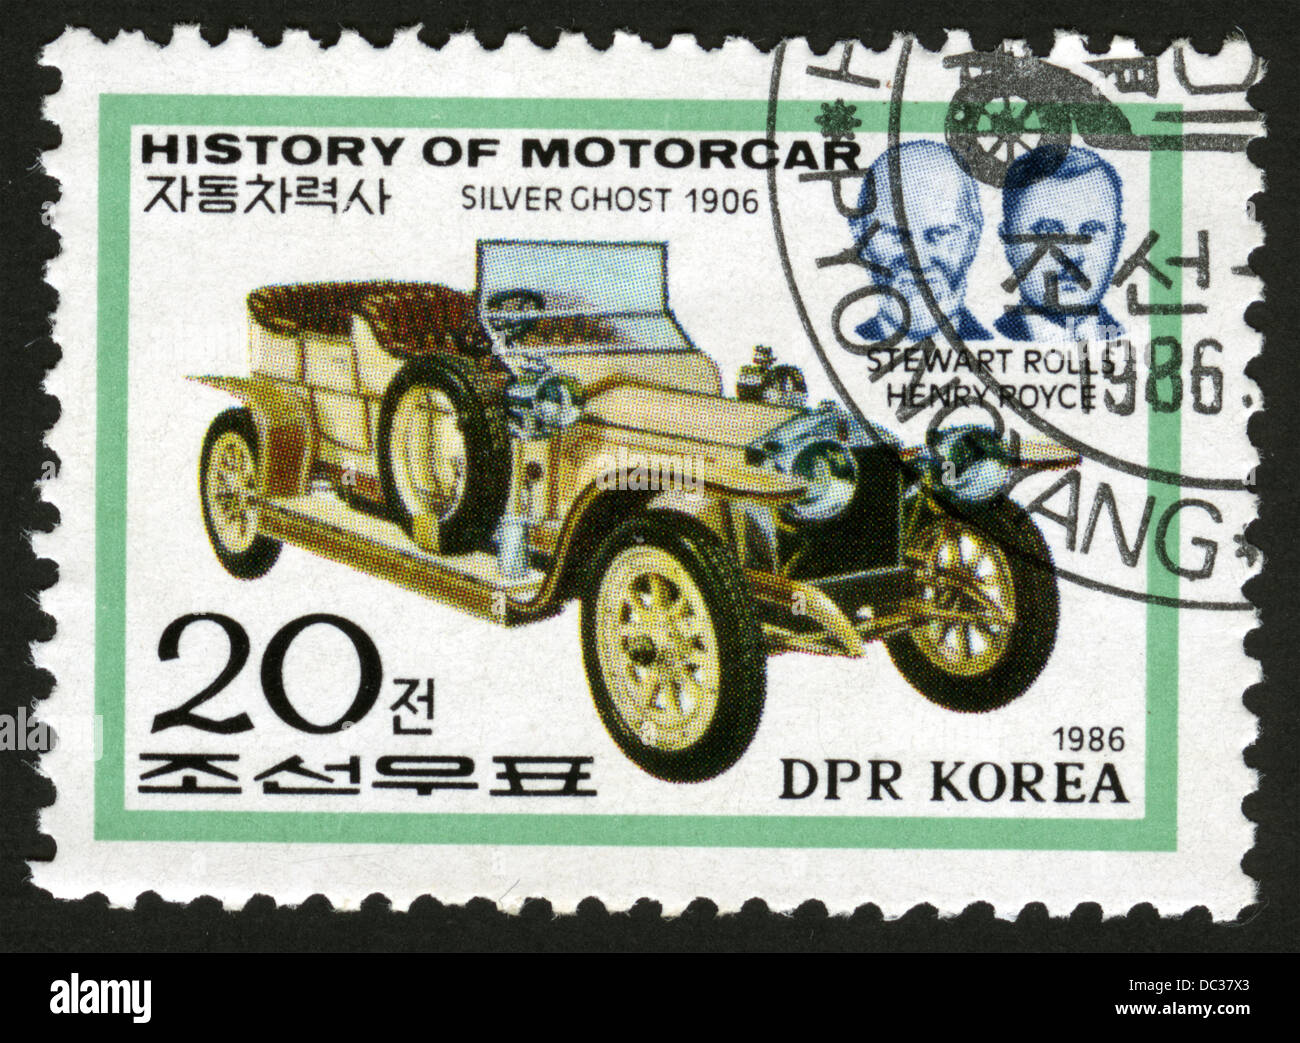 North Korea, 1986, post mark,stamp,History of motorcar, silver ghost ...